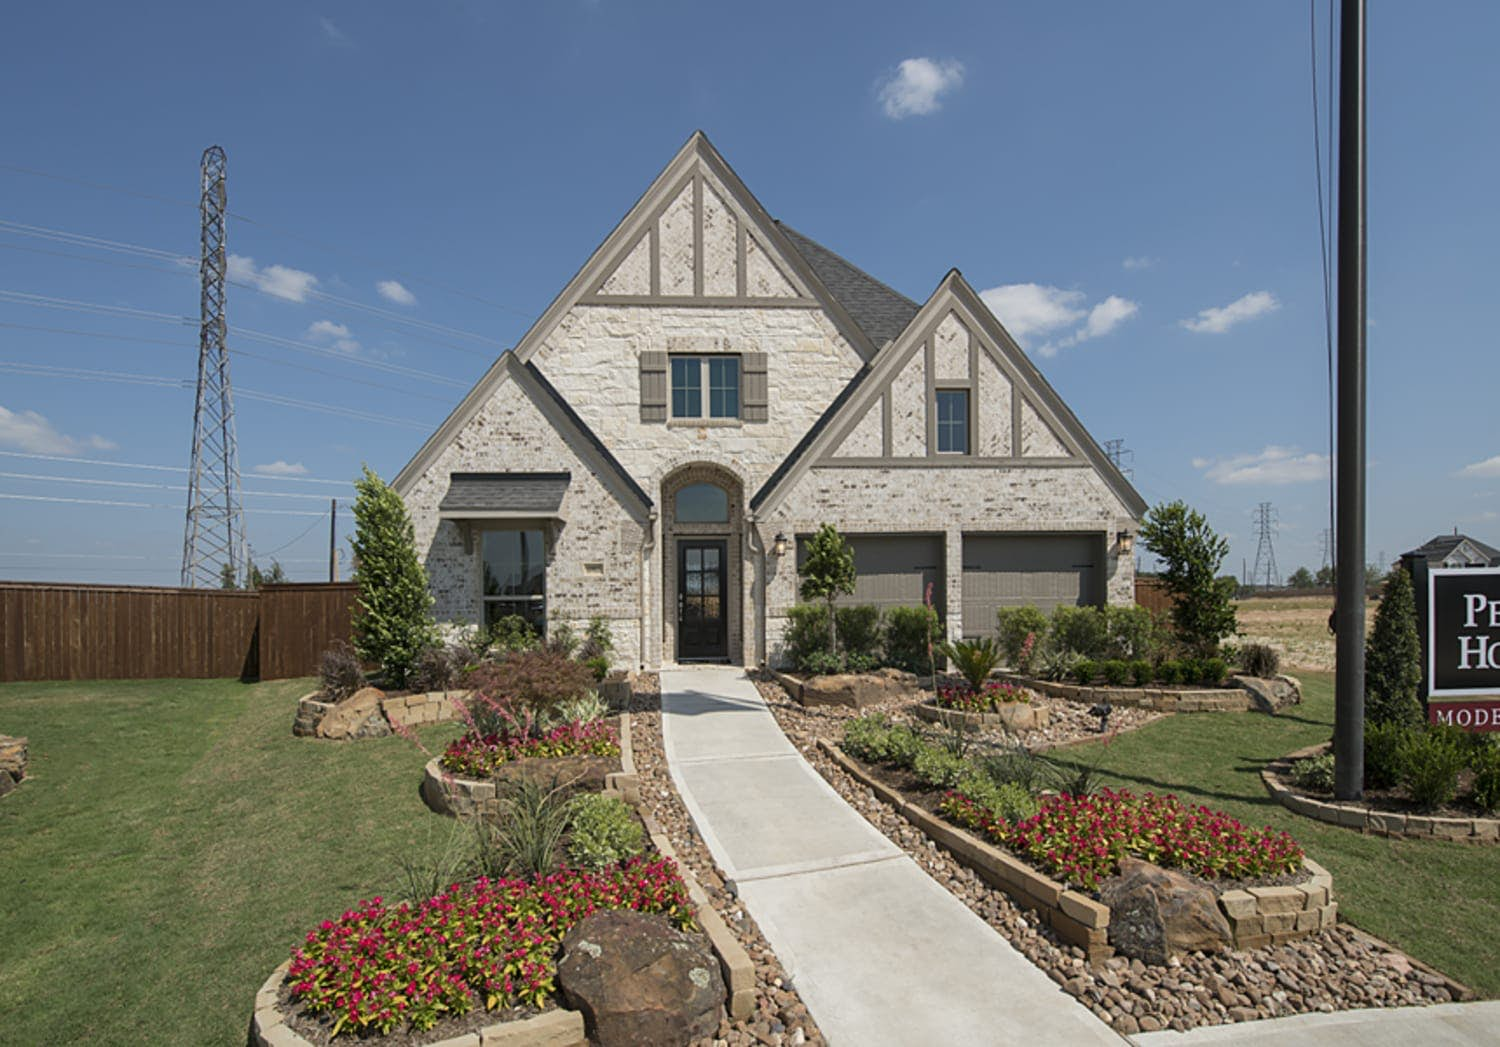 Perry Homes at Cane Island 1